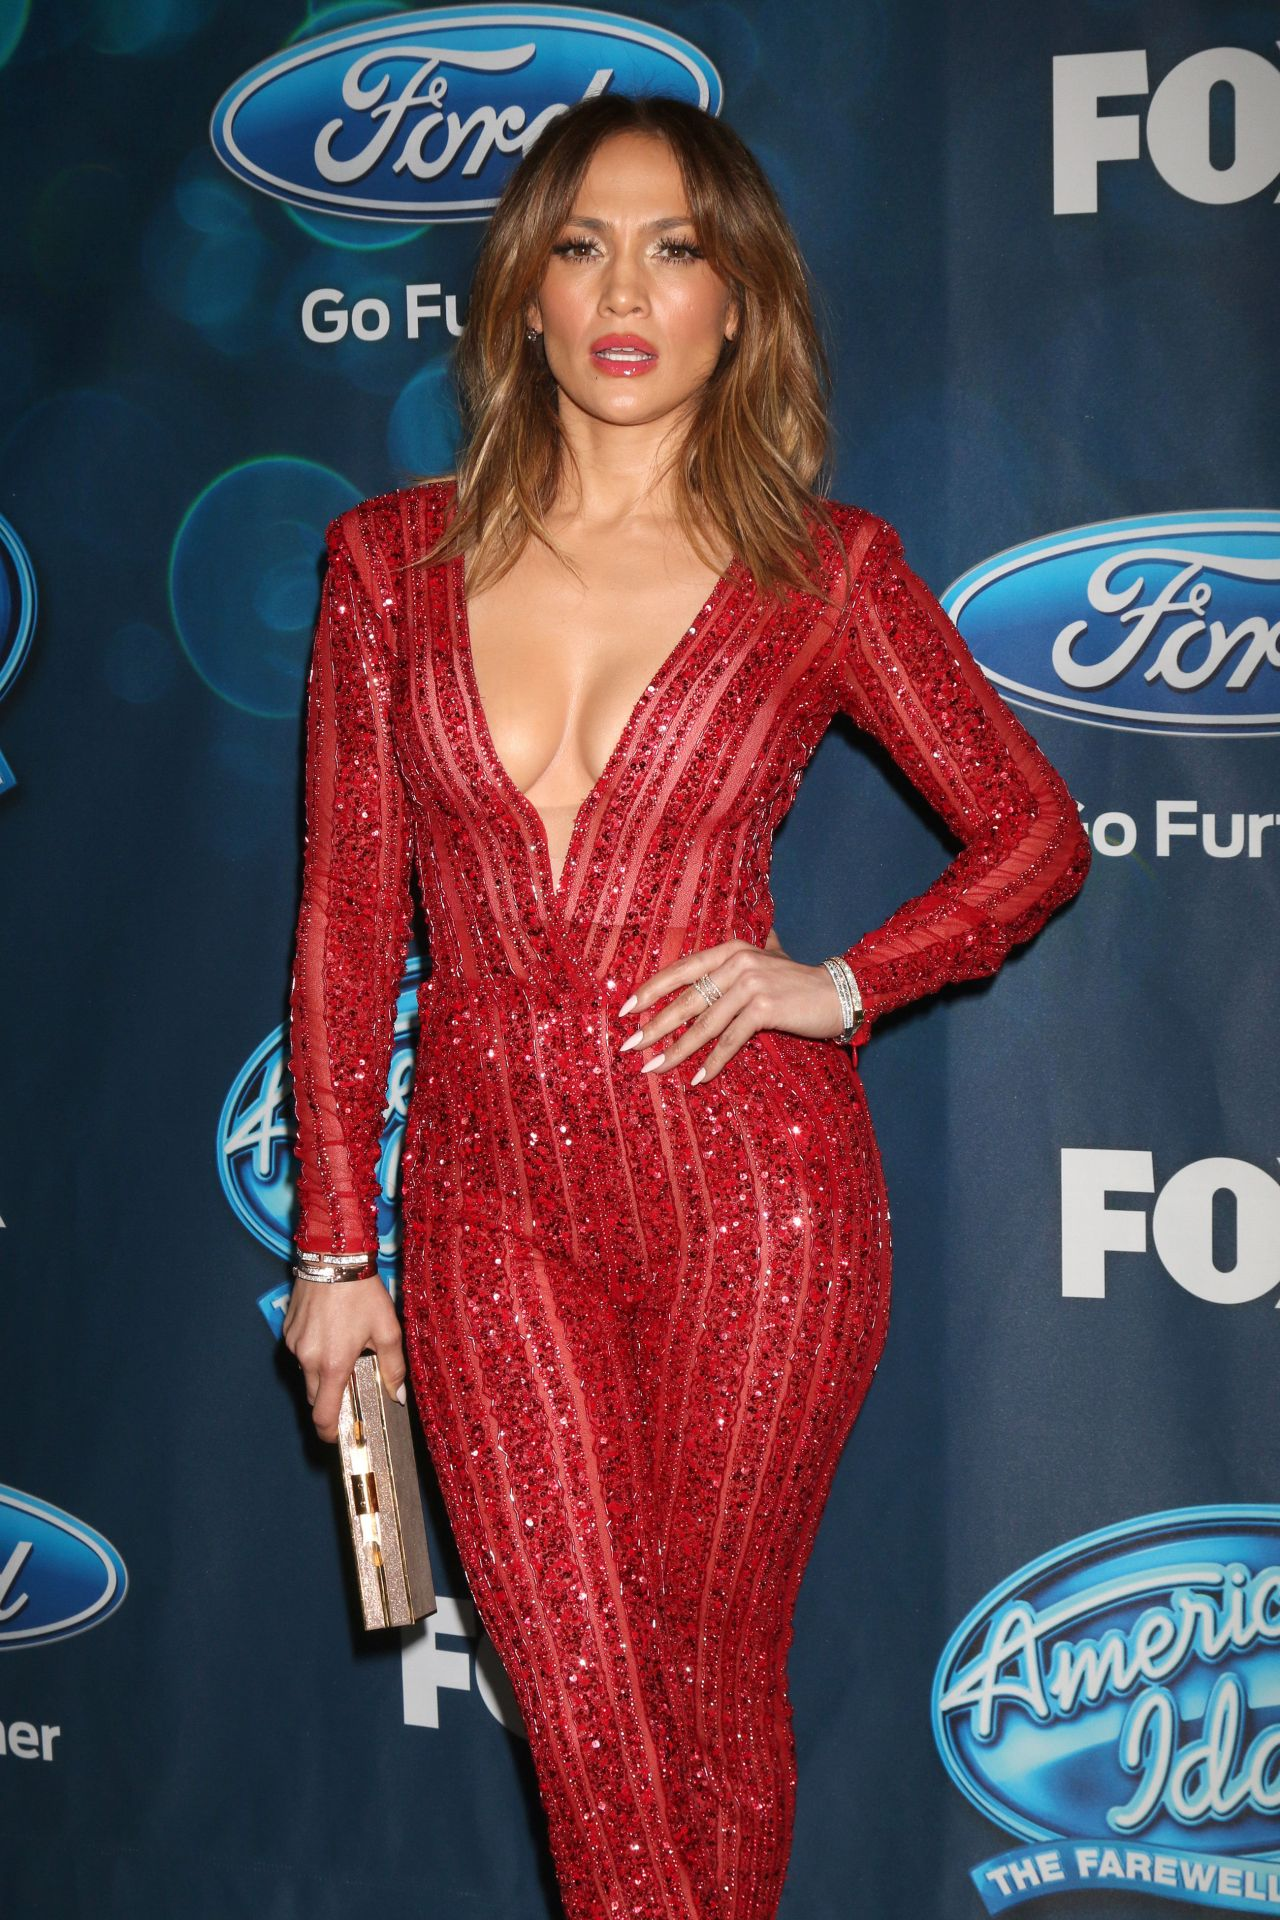 jennifer-lopez-looks-red-hot-in-a-jumpsuit-american-idol-xv-finalists-party-in-west-hollywood-2-25-2016-15